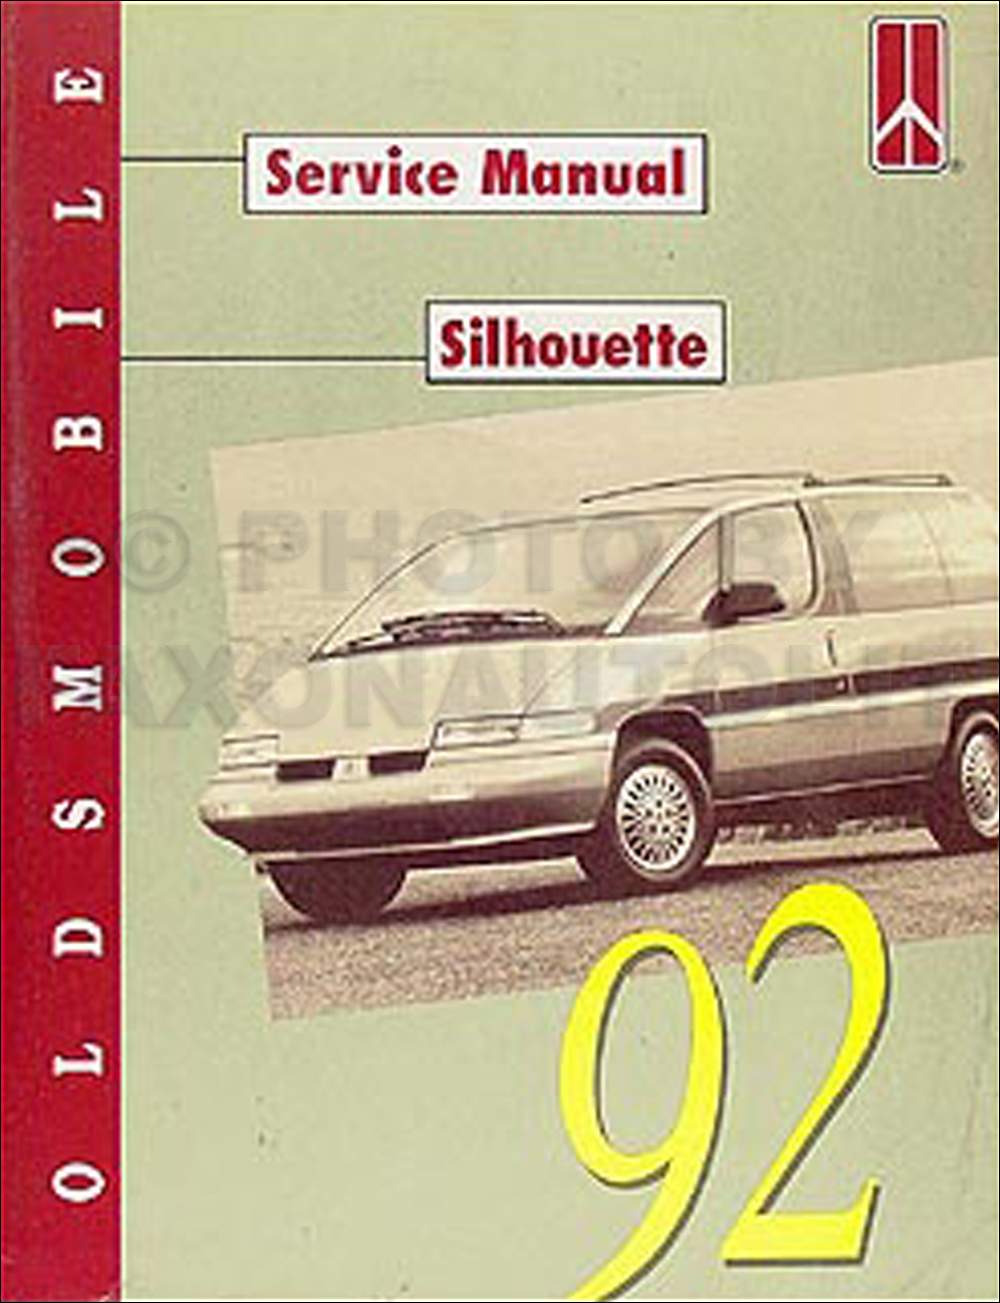 1992 Oldsmobile Silhouette Van Repair Manual Original